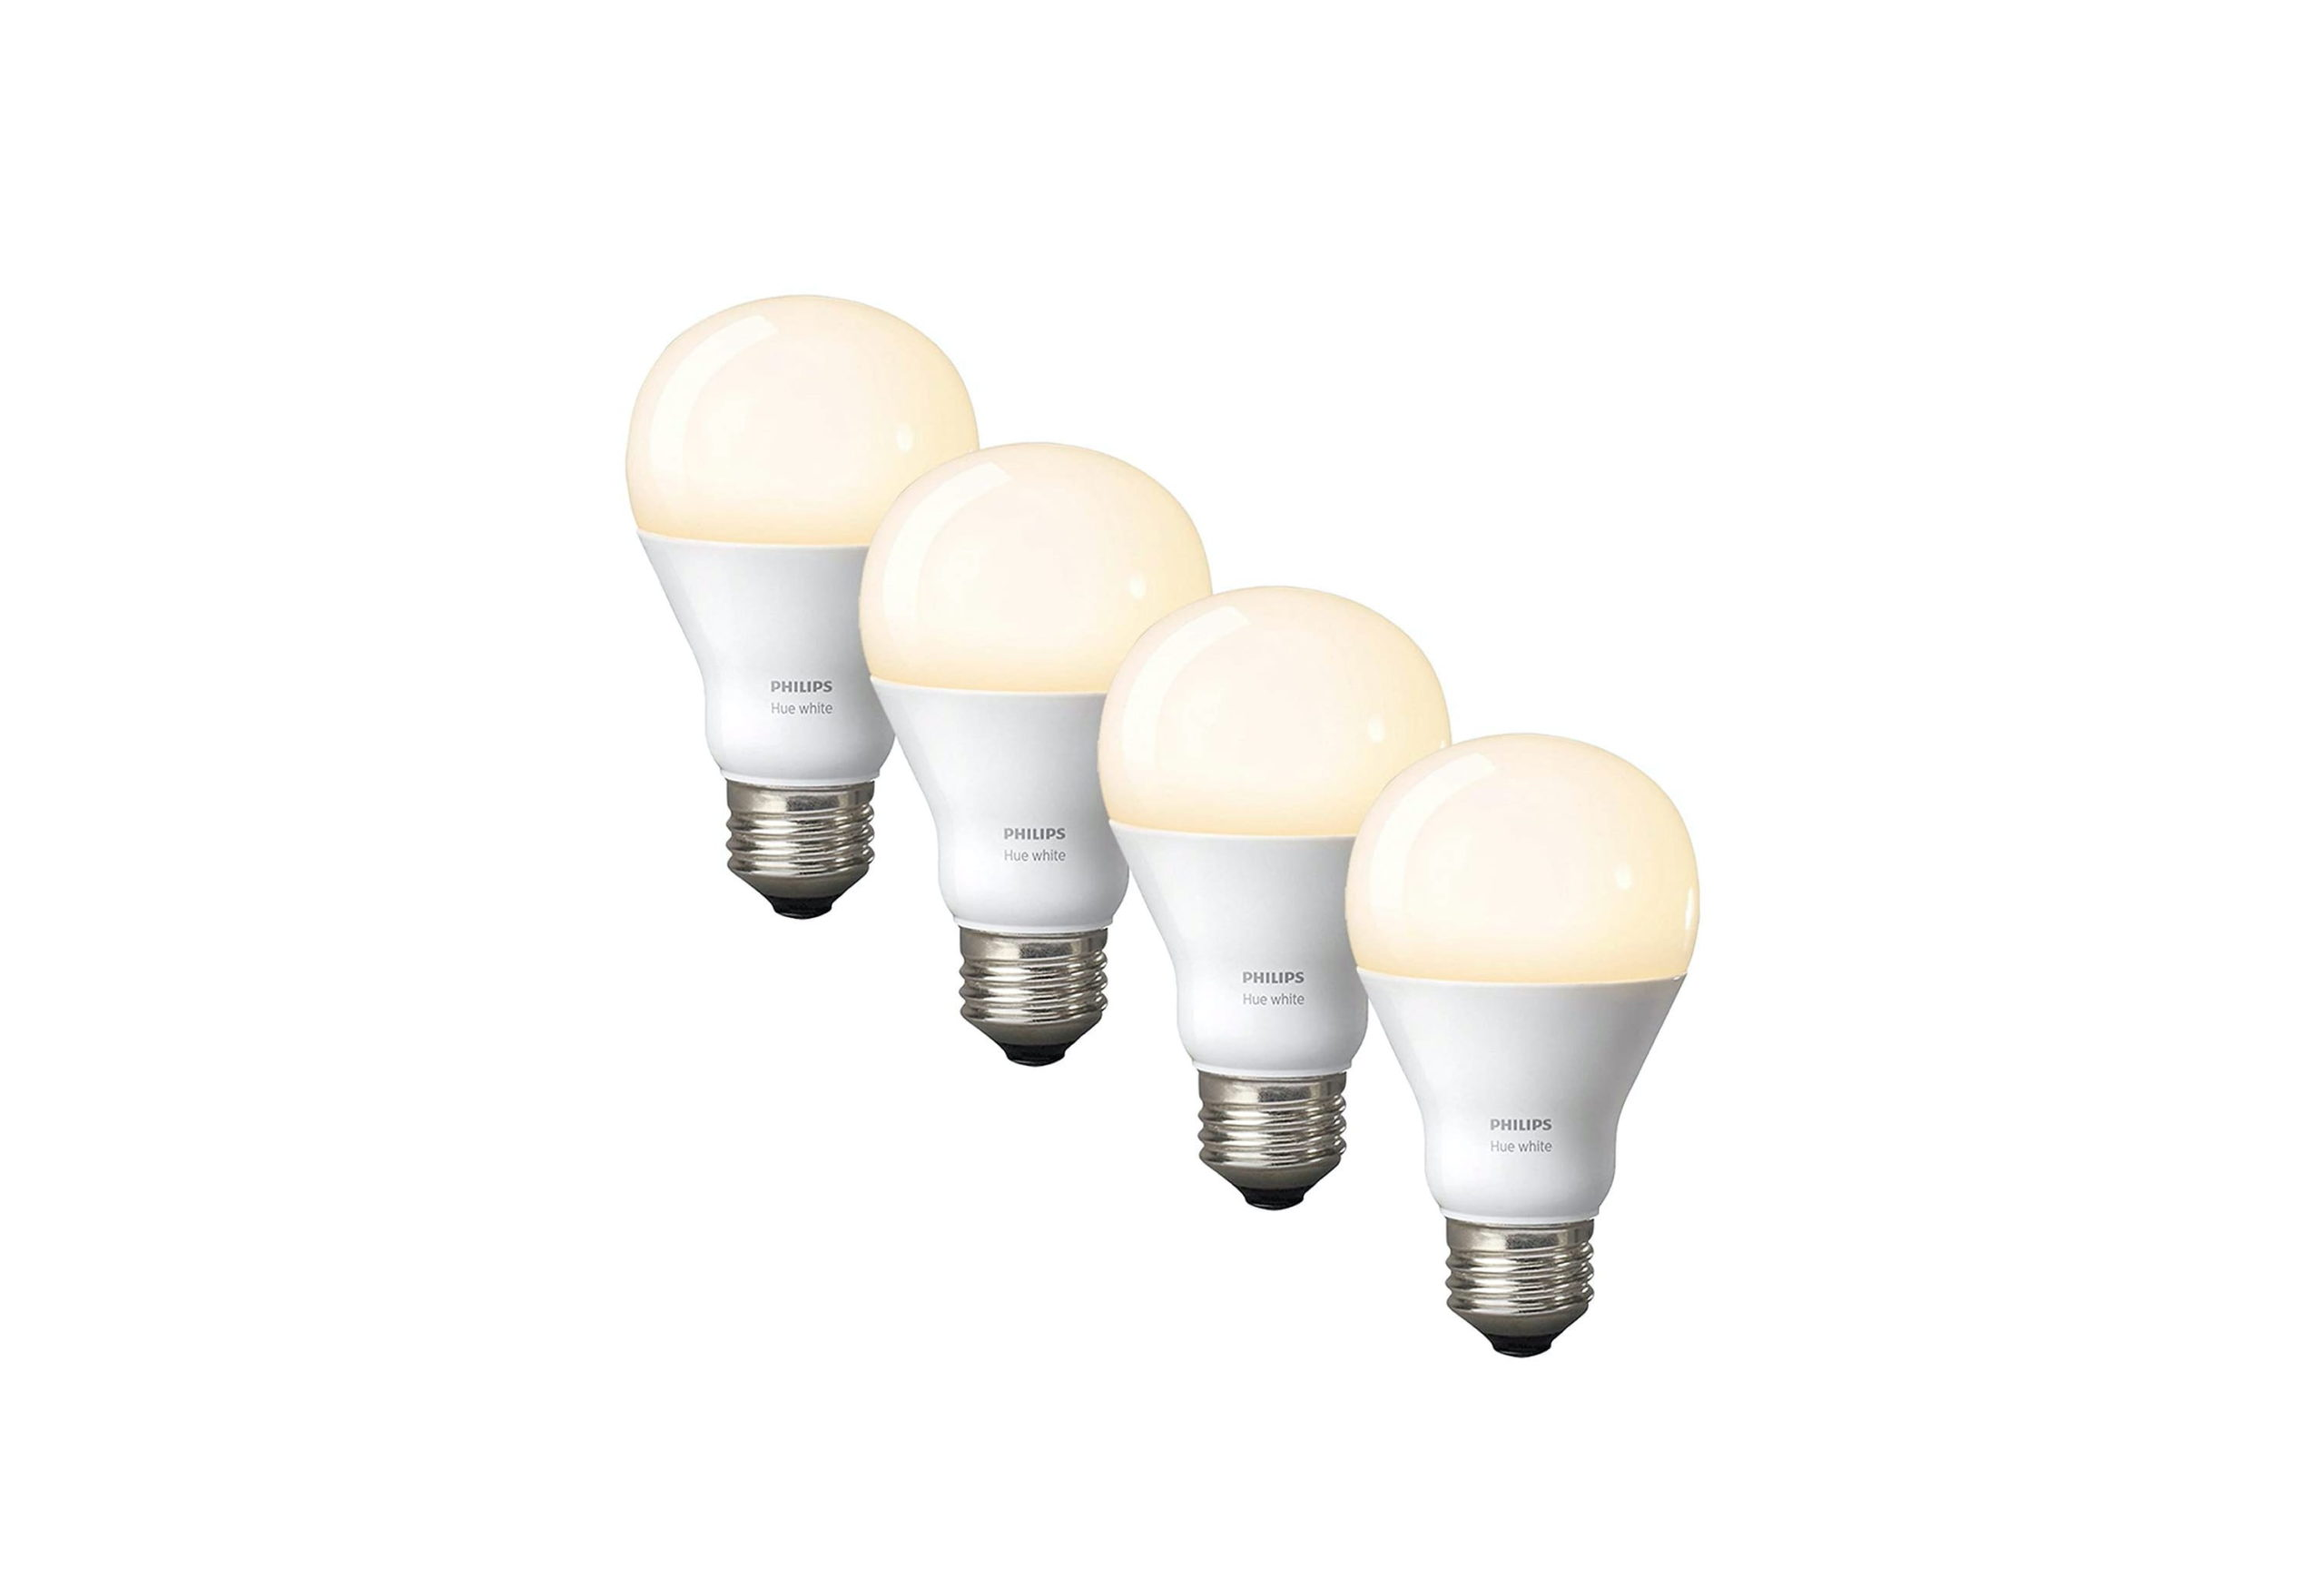 _Philips Hue White A19 4-Pack 60W Equivalent Dimmable LED Smart Bulb-min (1)